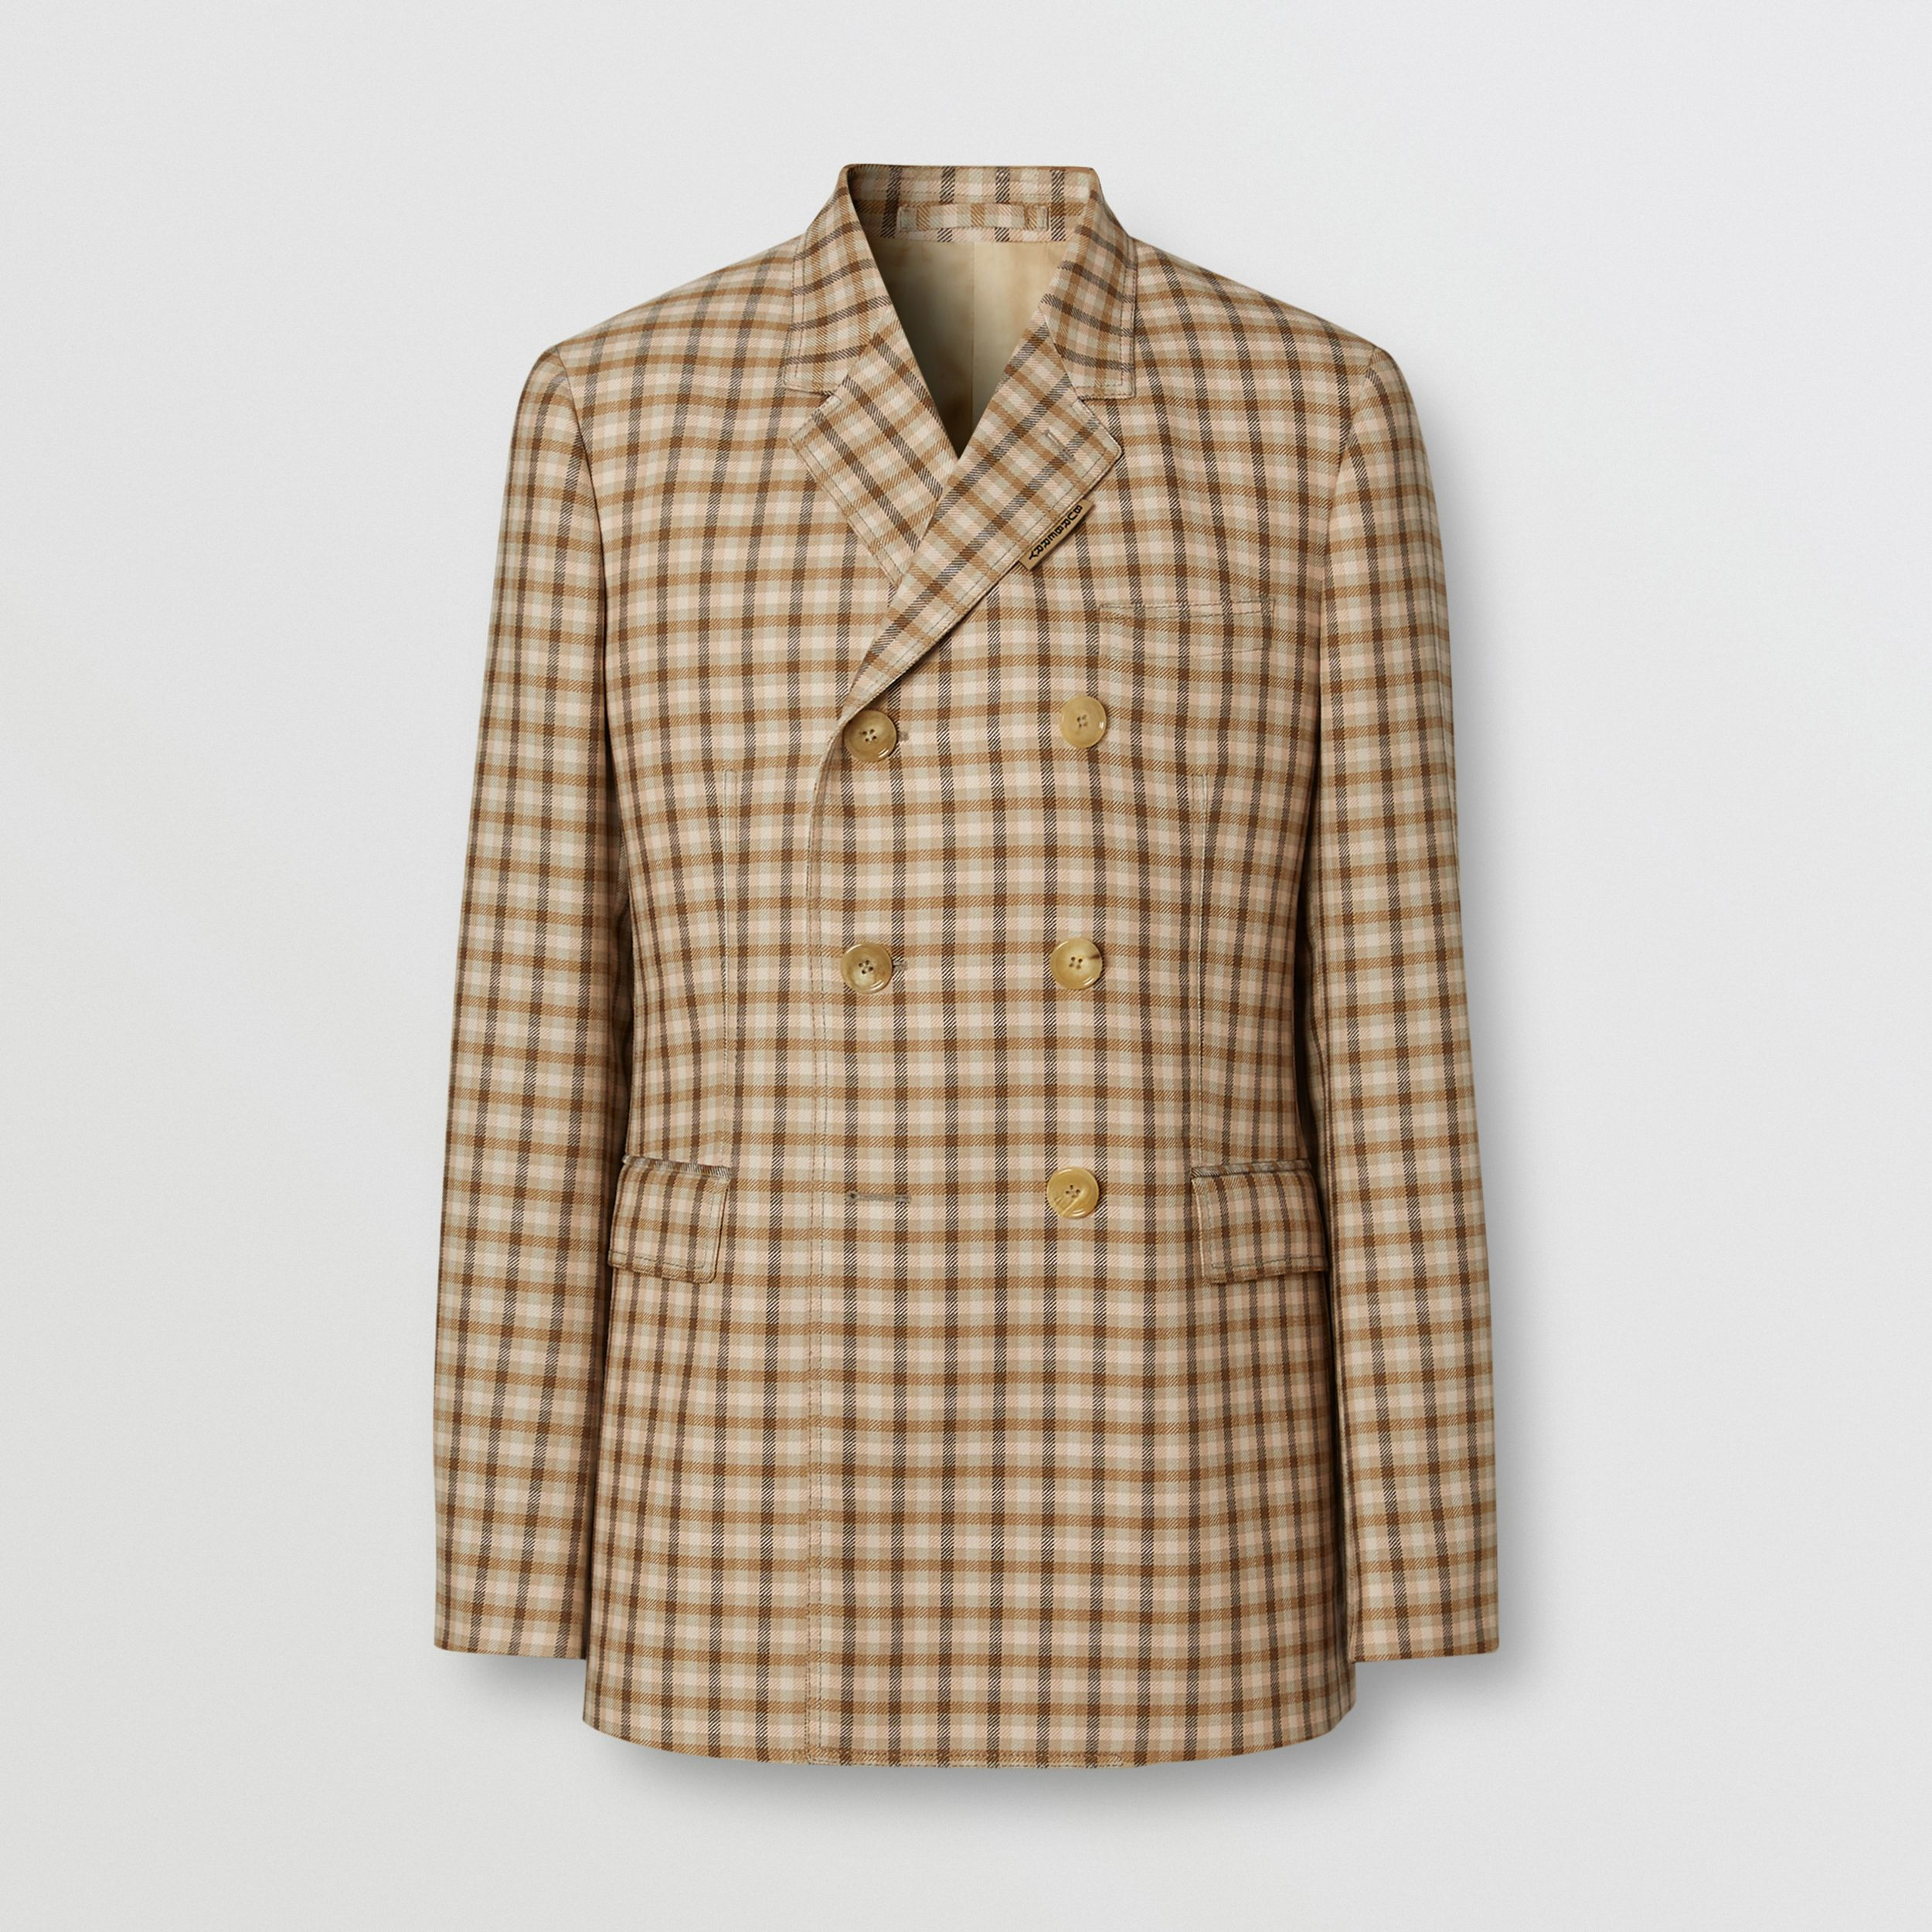 Slim Fit Gingham Wool Tailored Jacket in Soft Fawn - Men | Burberry - 4